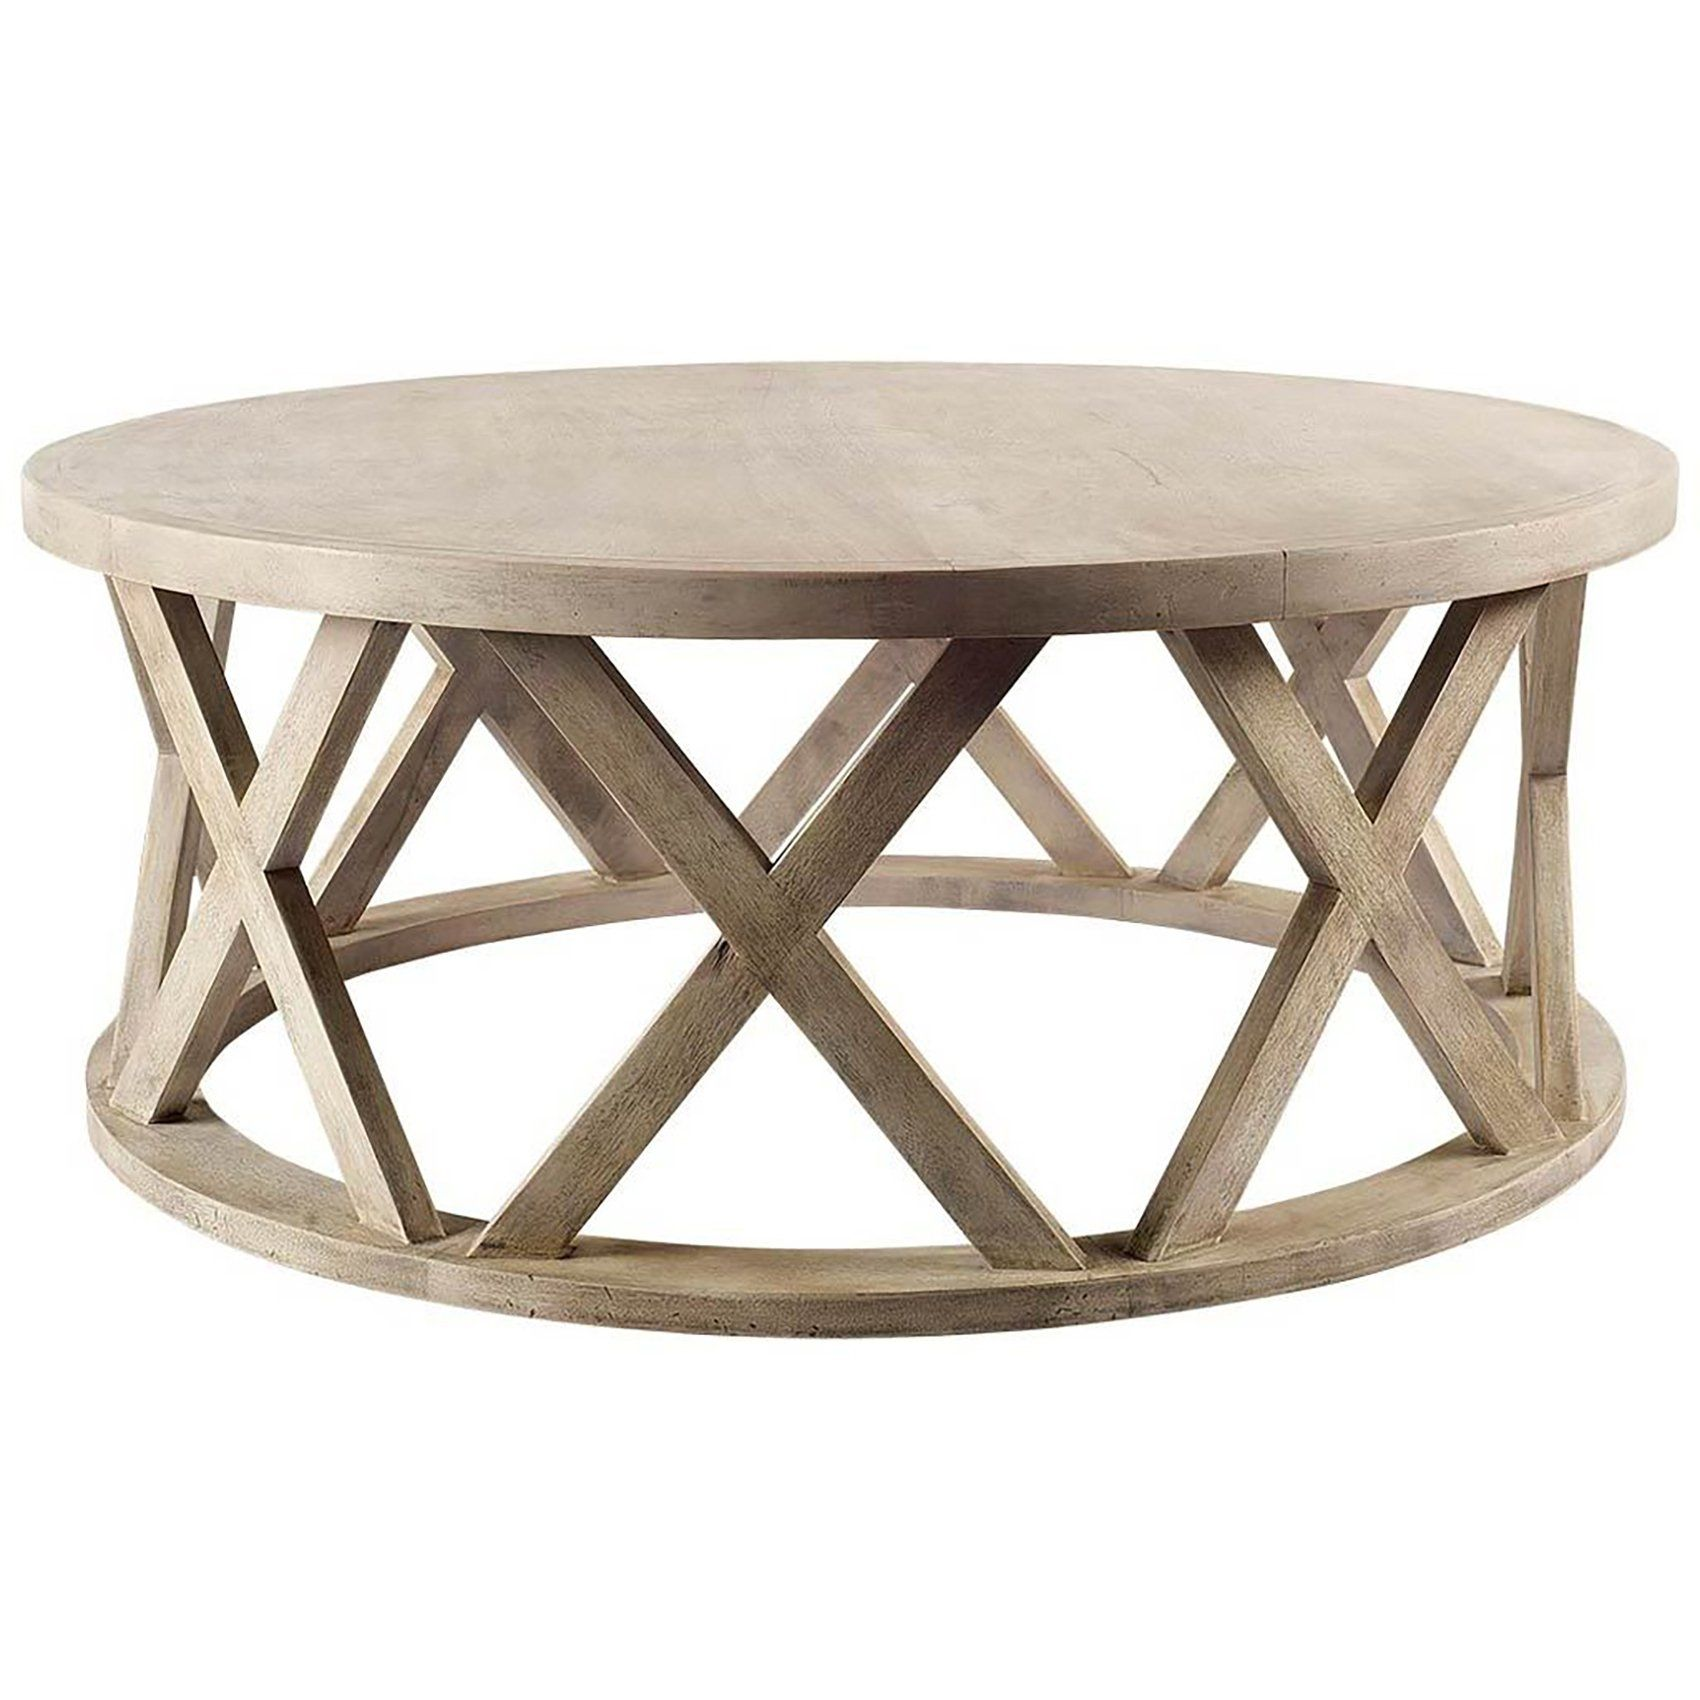 Candelabra Home Forsey Coffee Table In 2021 Circular Coffee Table Coffee Table Coffee Table Wood [ 1700 x 1700 Pixel ]